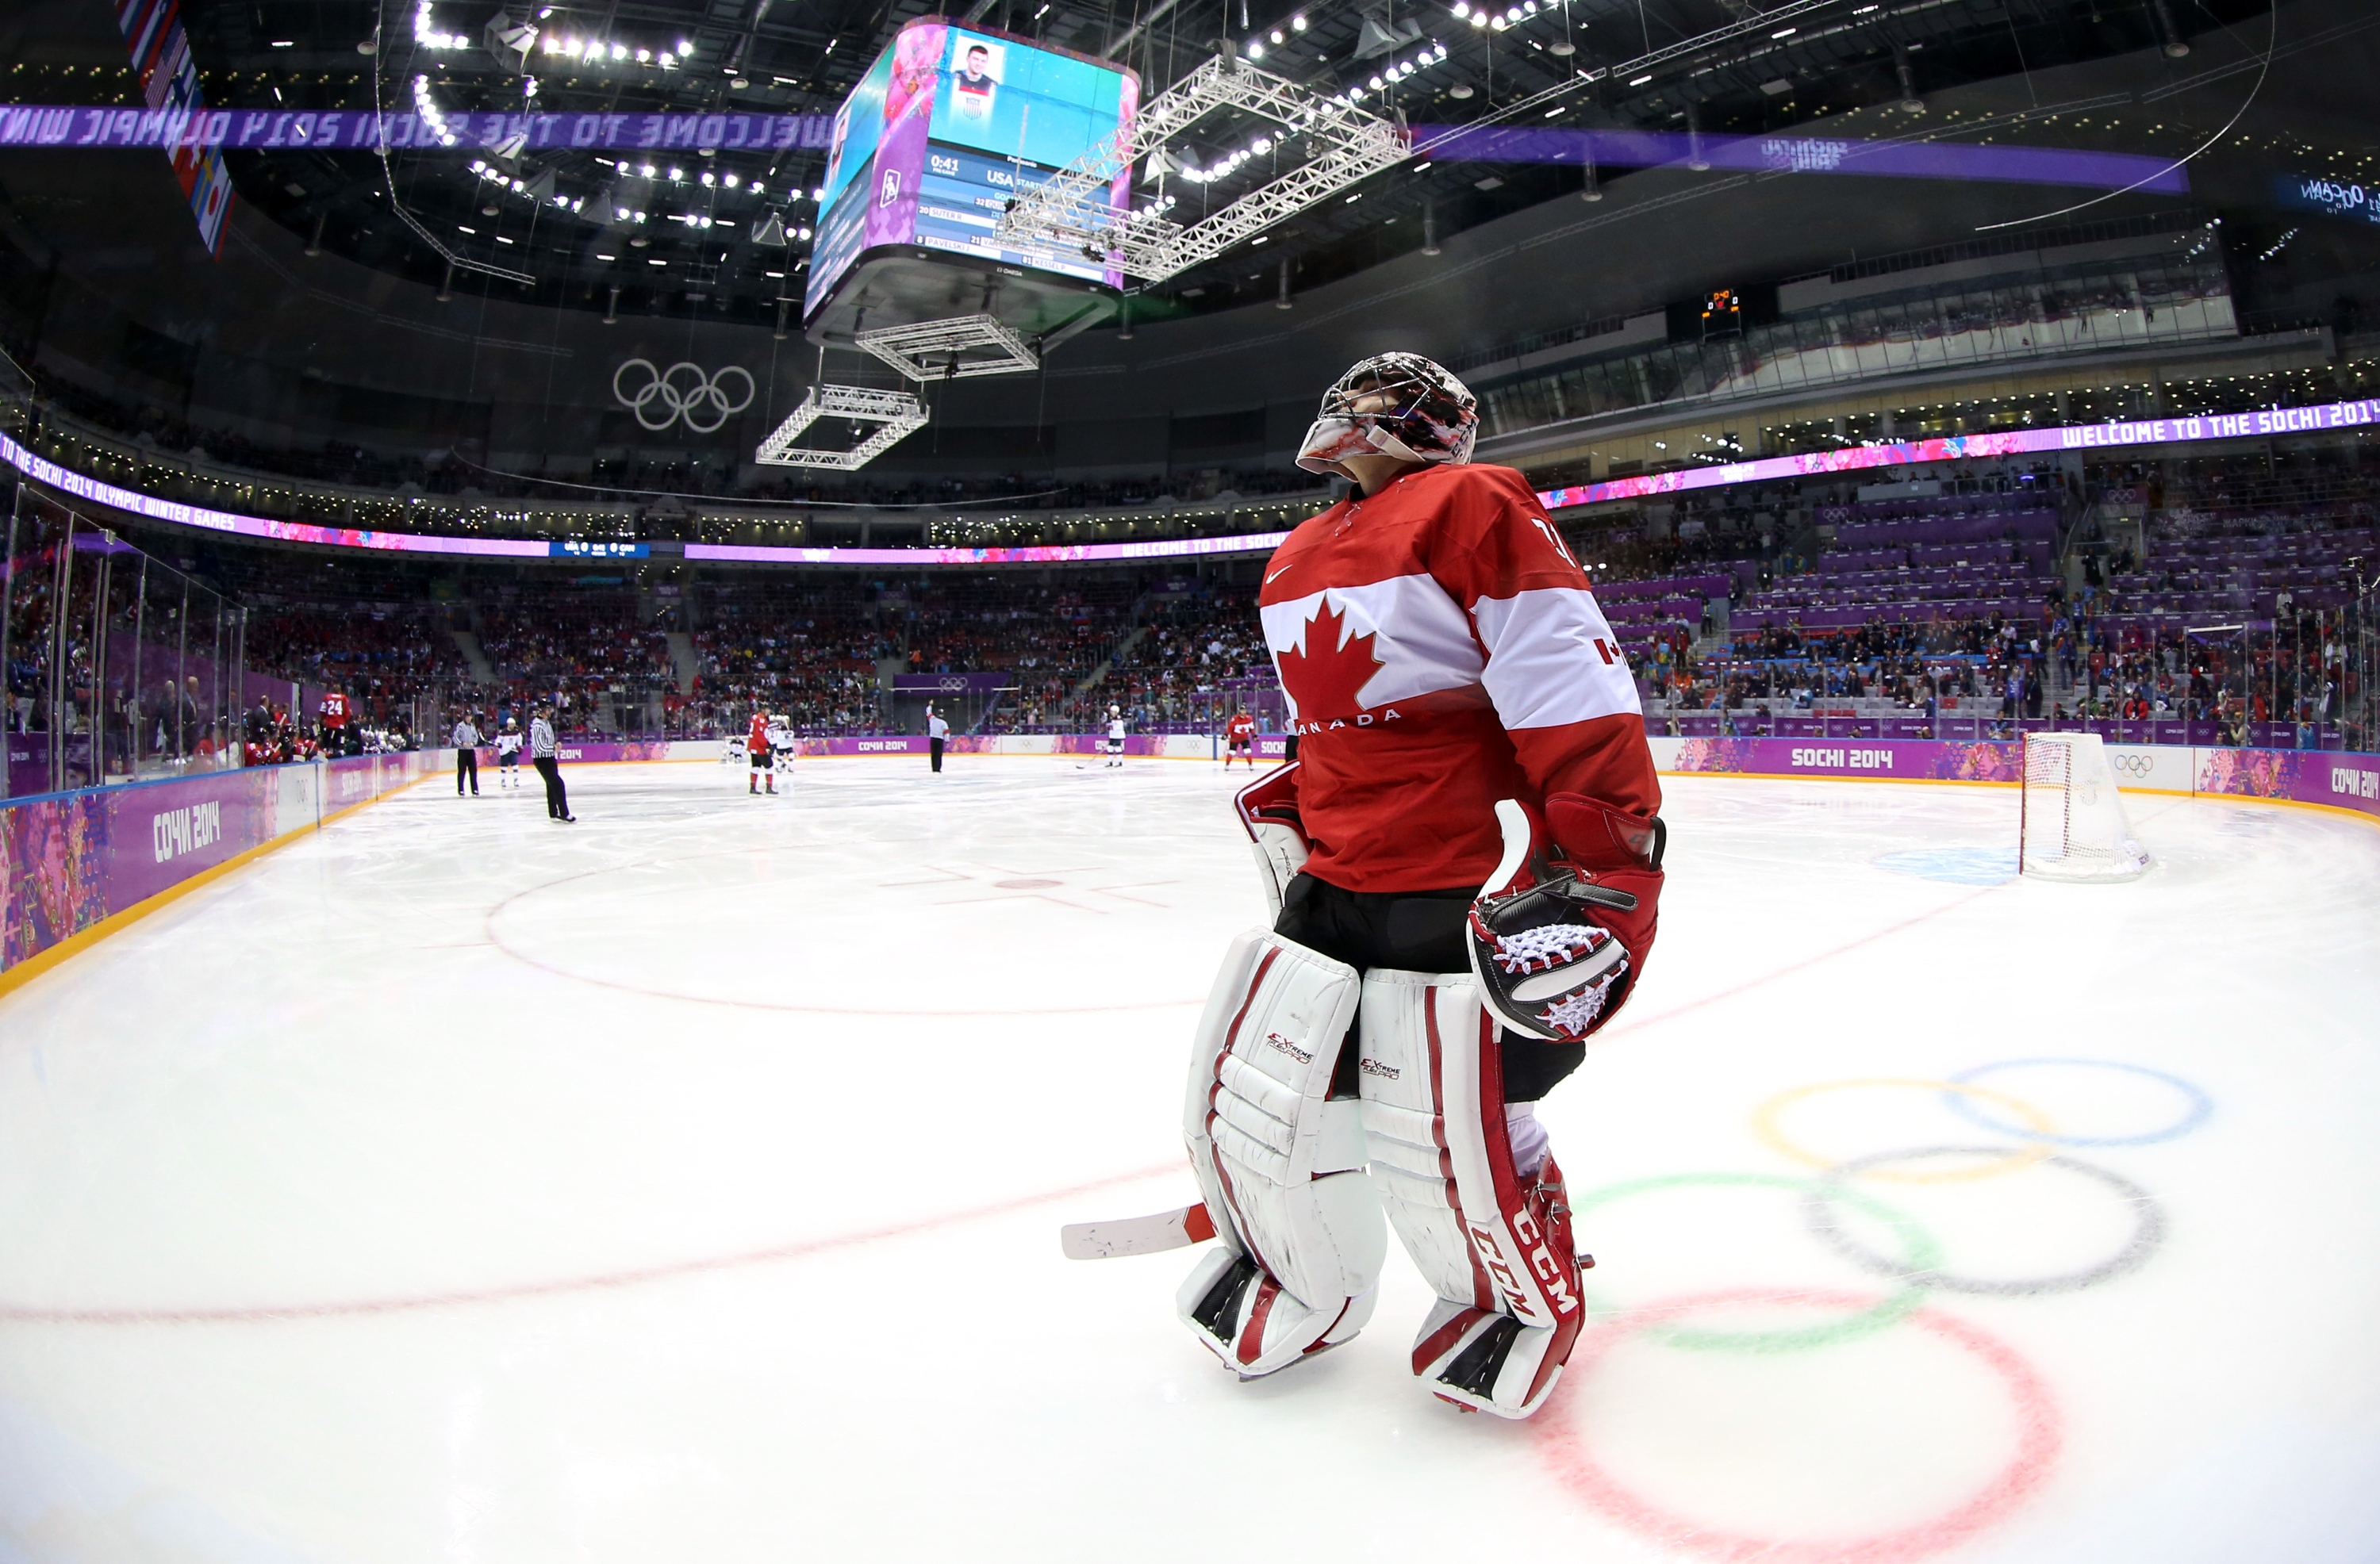 Sochi Olympics Day 16 Canada Defeats Us 1 0 To Move On To Gold Medal Game